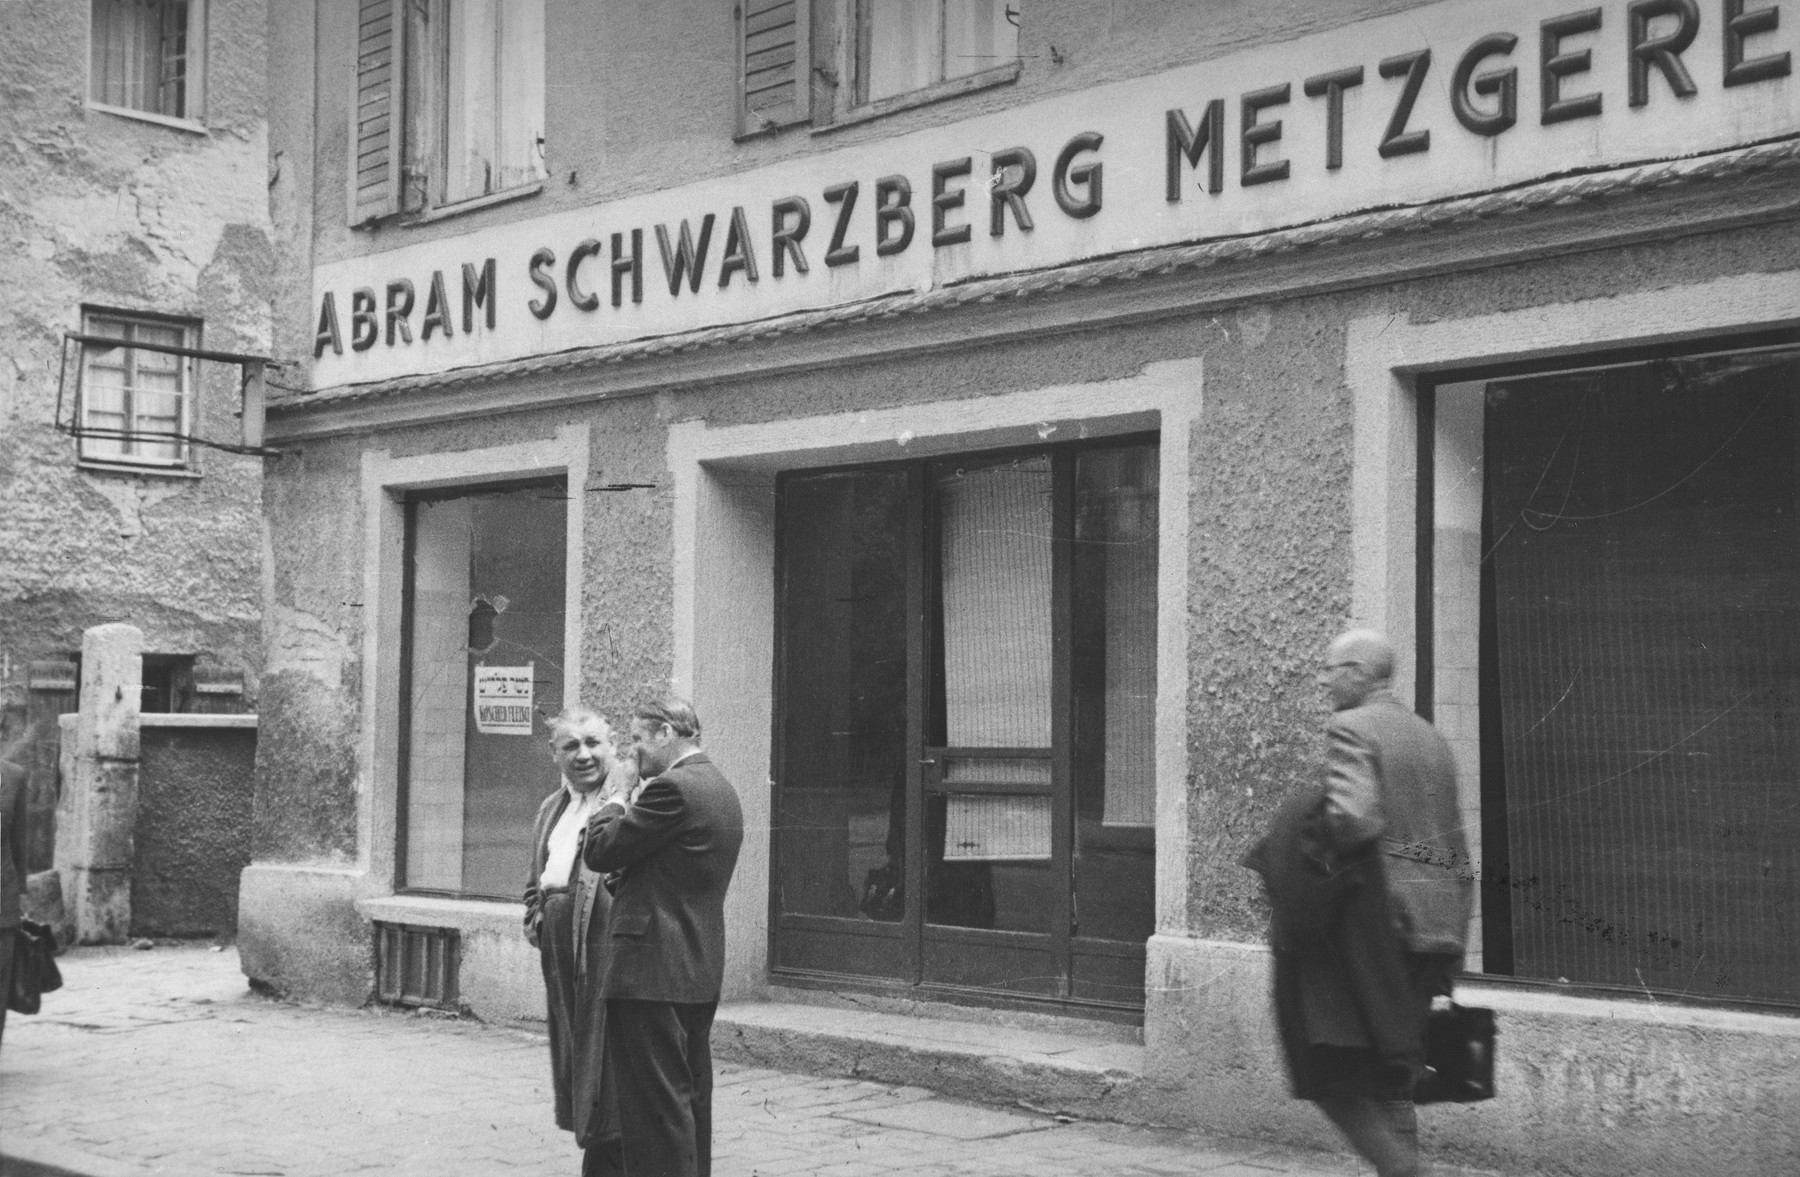 Two men stand outside a kosher butcher shop on the Ismaningerstrasse in Munich that was vandalized in an anti-Semitic attack.